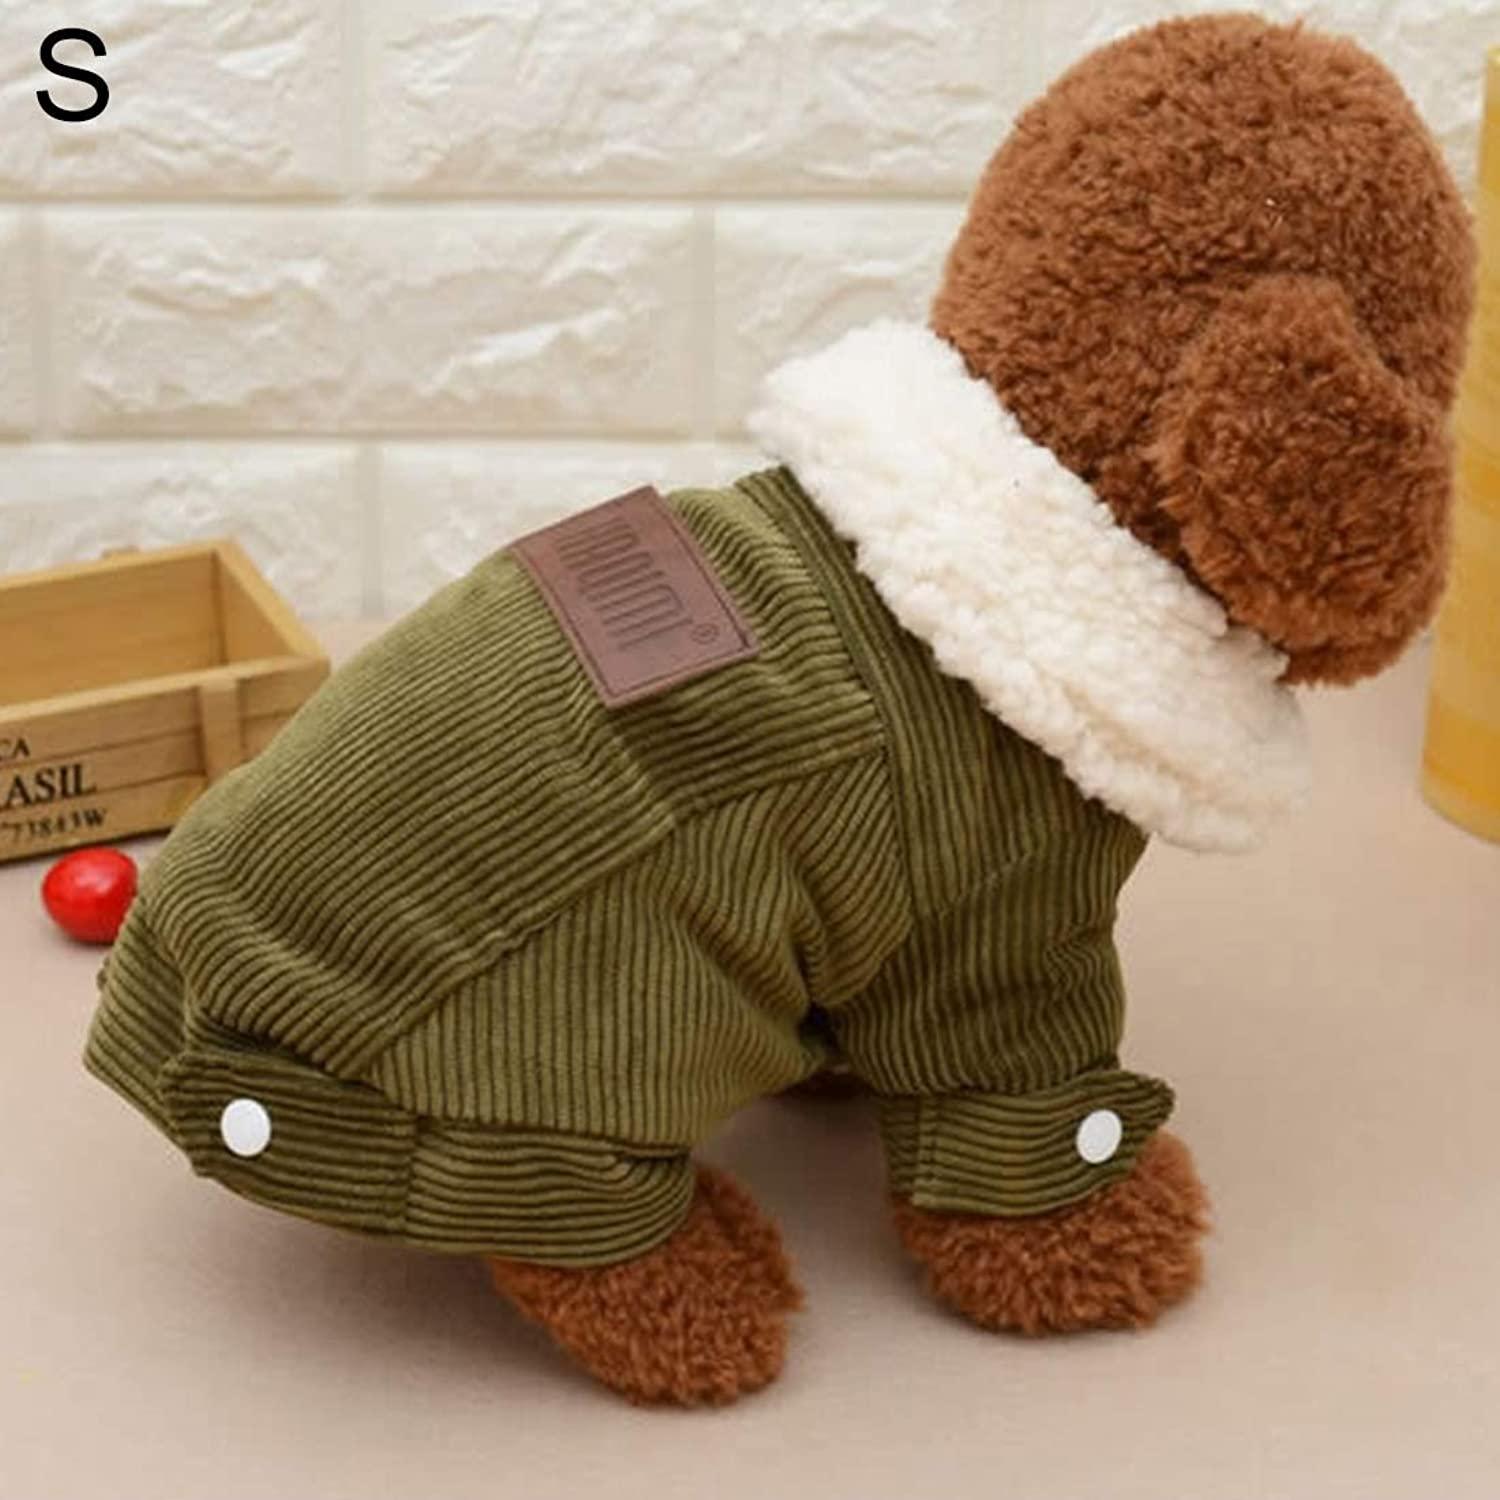 Perfetta Home  y Beautiful Fashion Comfortable New Autumn and Winter Style Pet Corduroy Jacket, Size: S, Bust: 35cm, Back Length: 24cm Durable (Colore: Caffè)